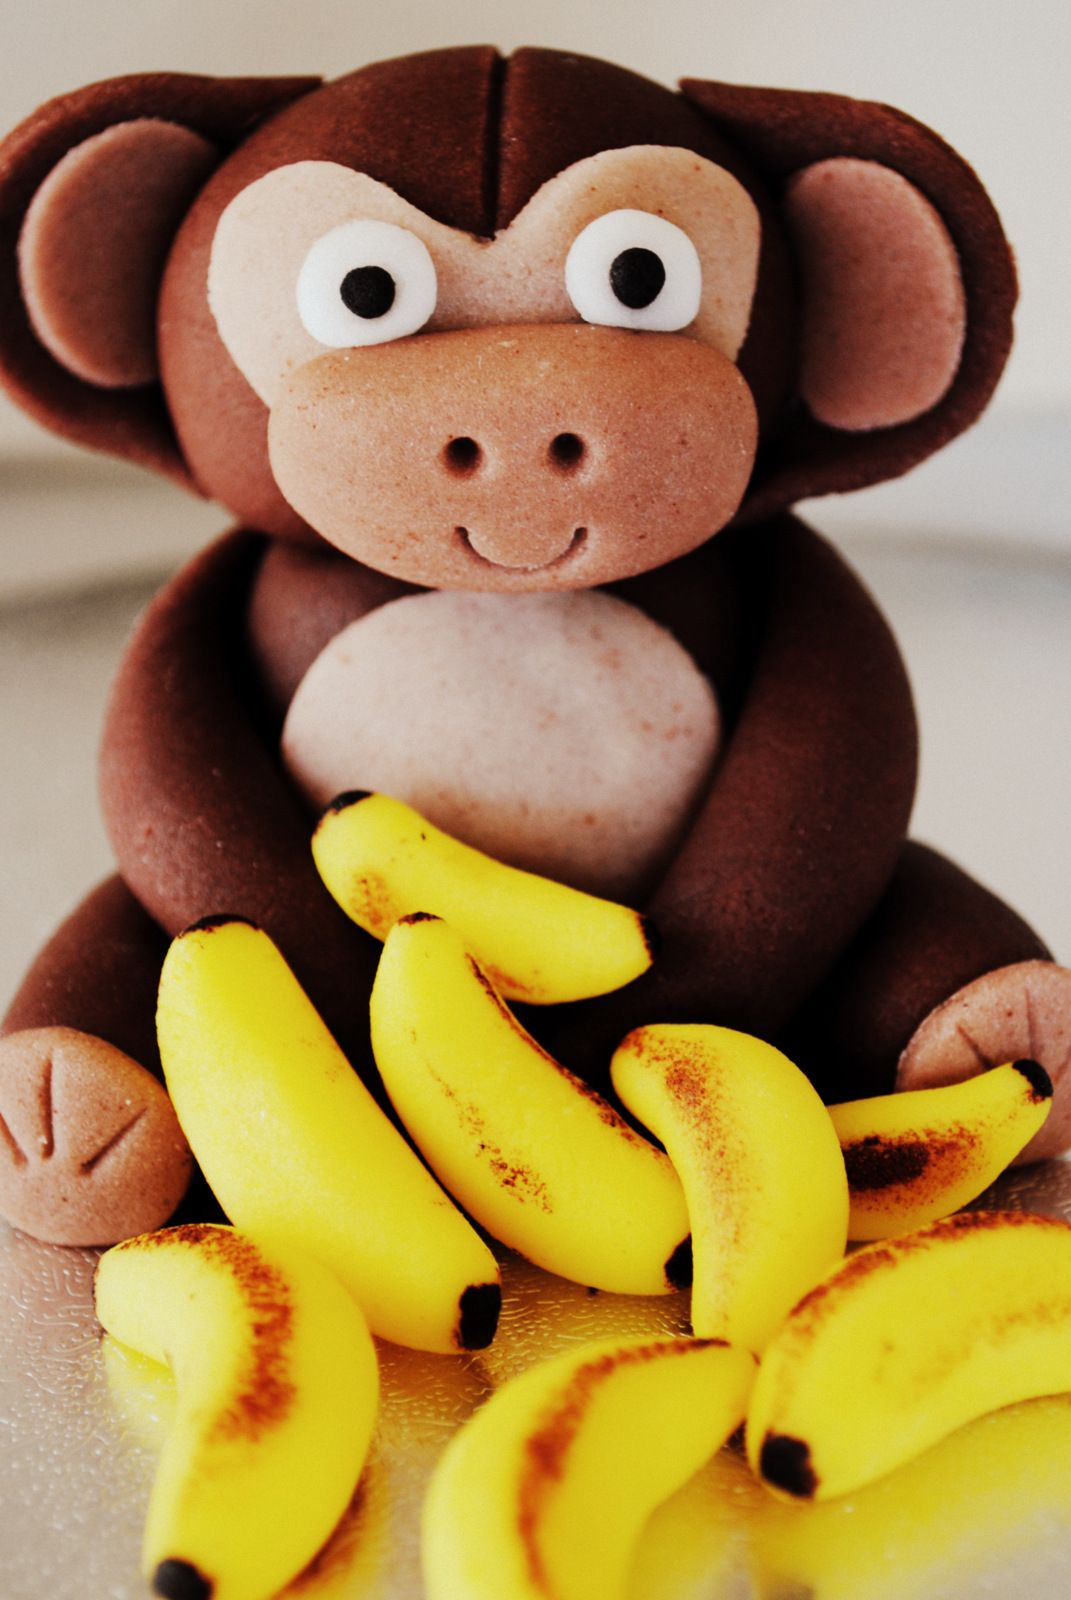 Cake toppers and figurines - Monkey | Cake toppers, Kids ...